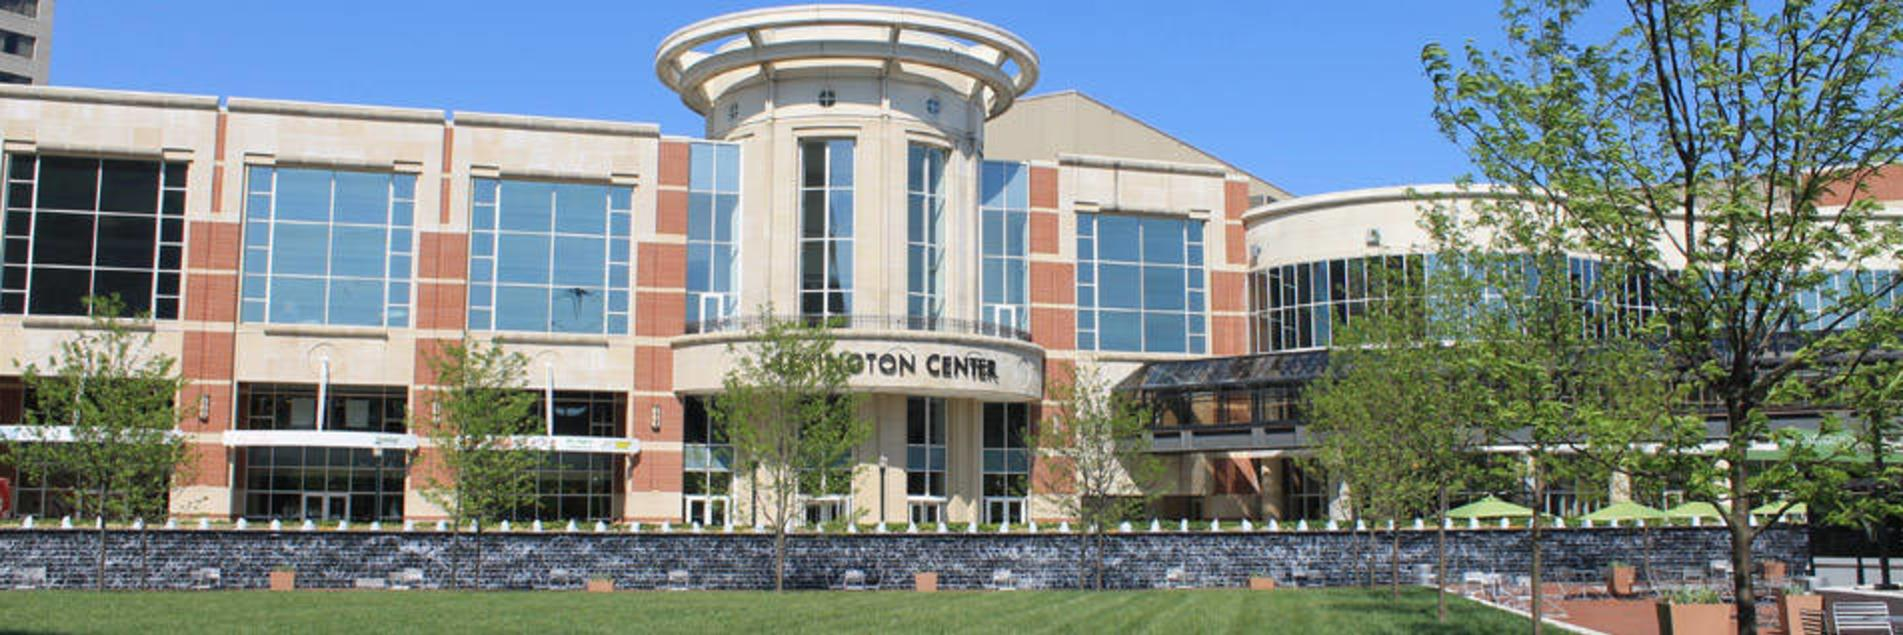 Lexington Center - Banner